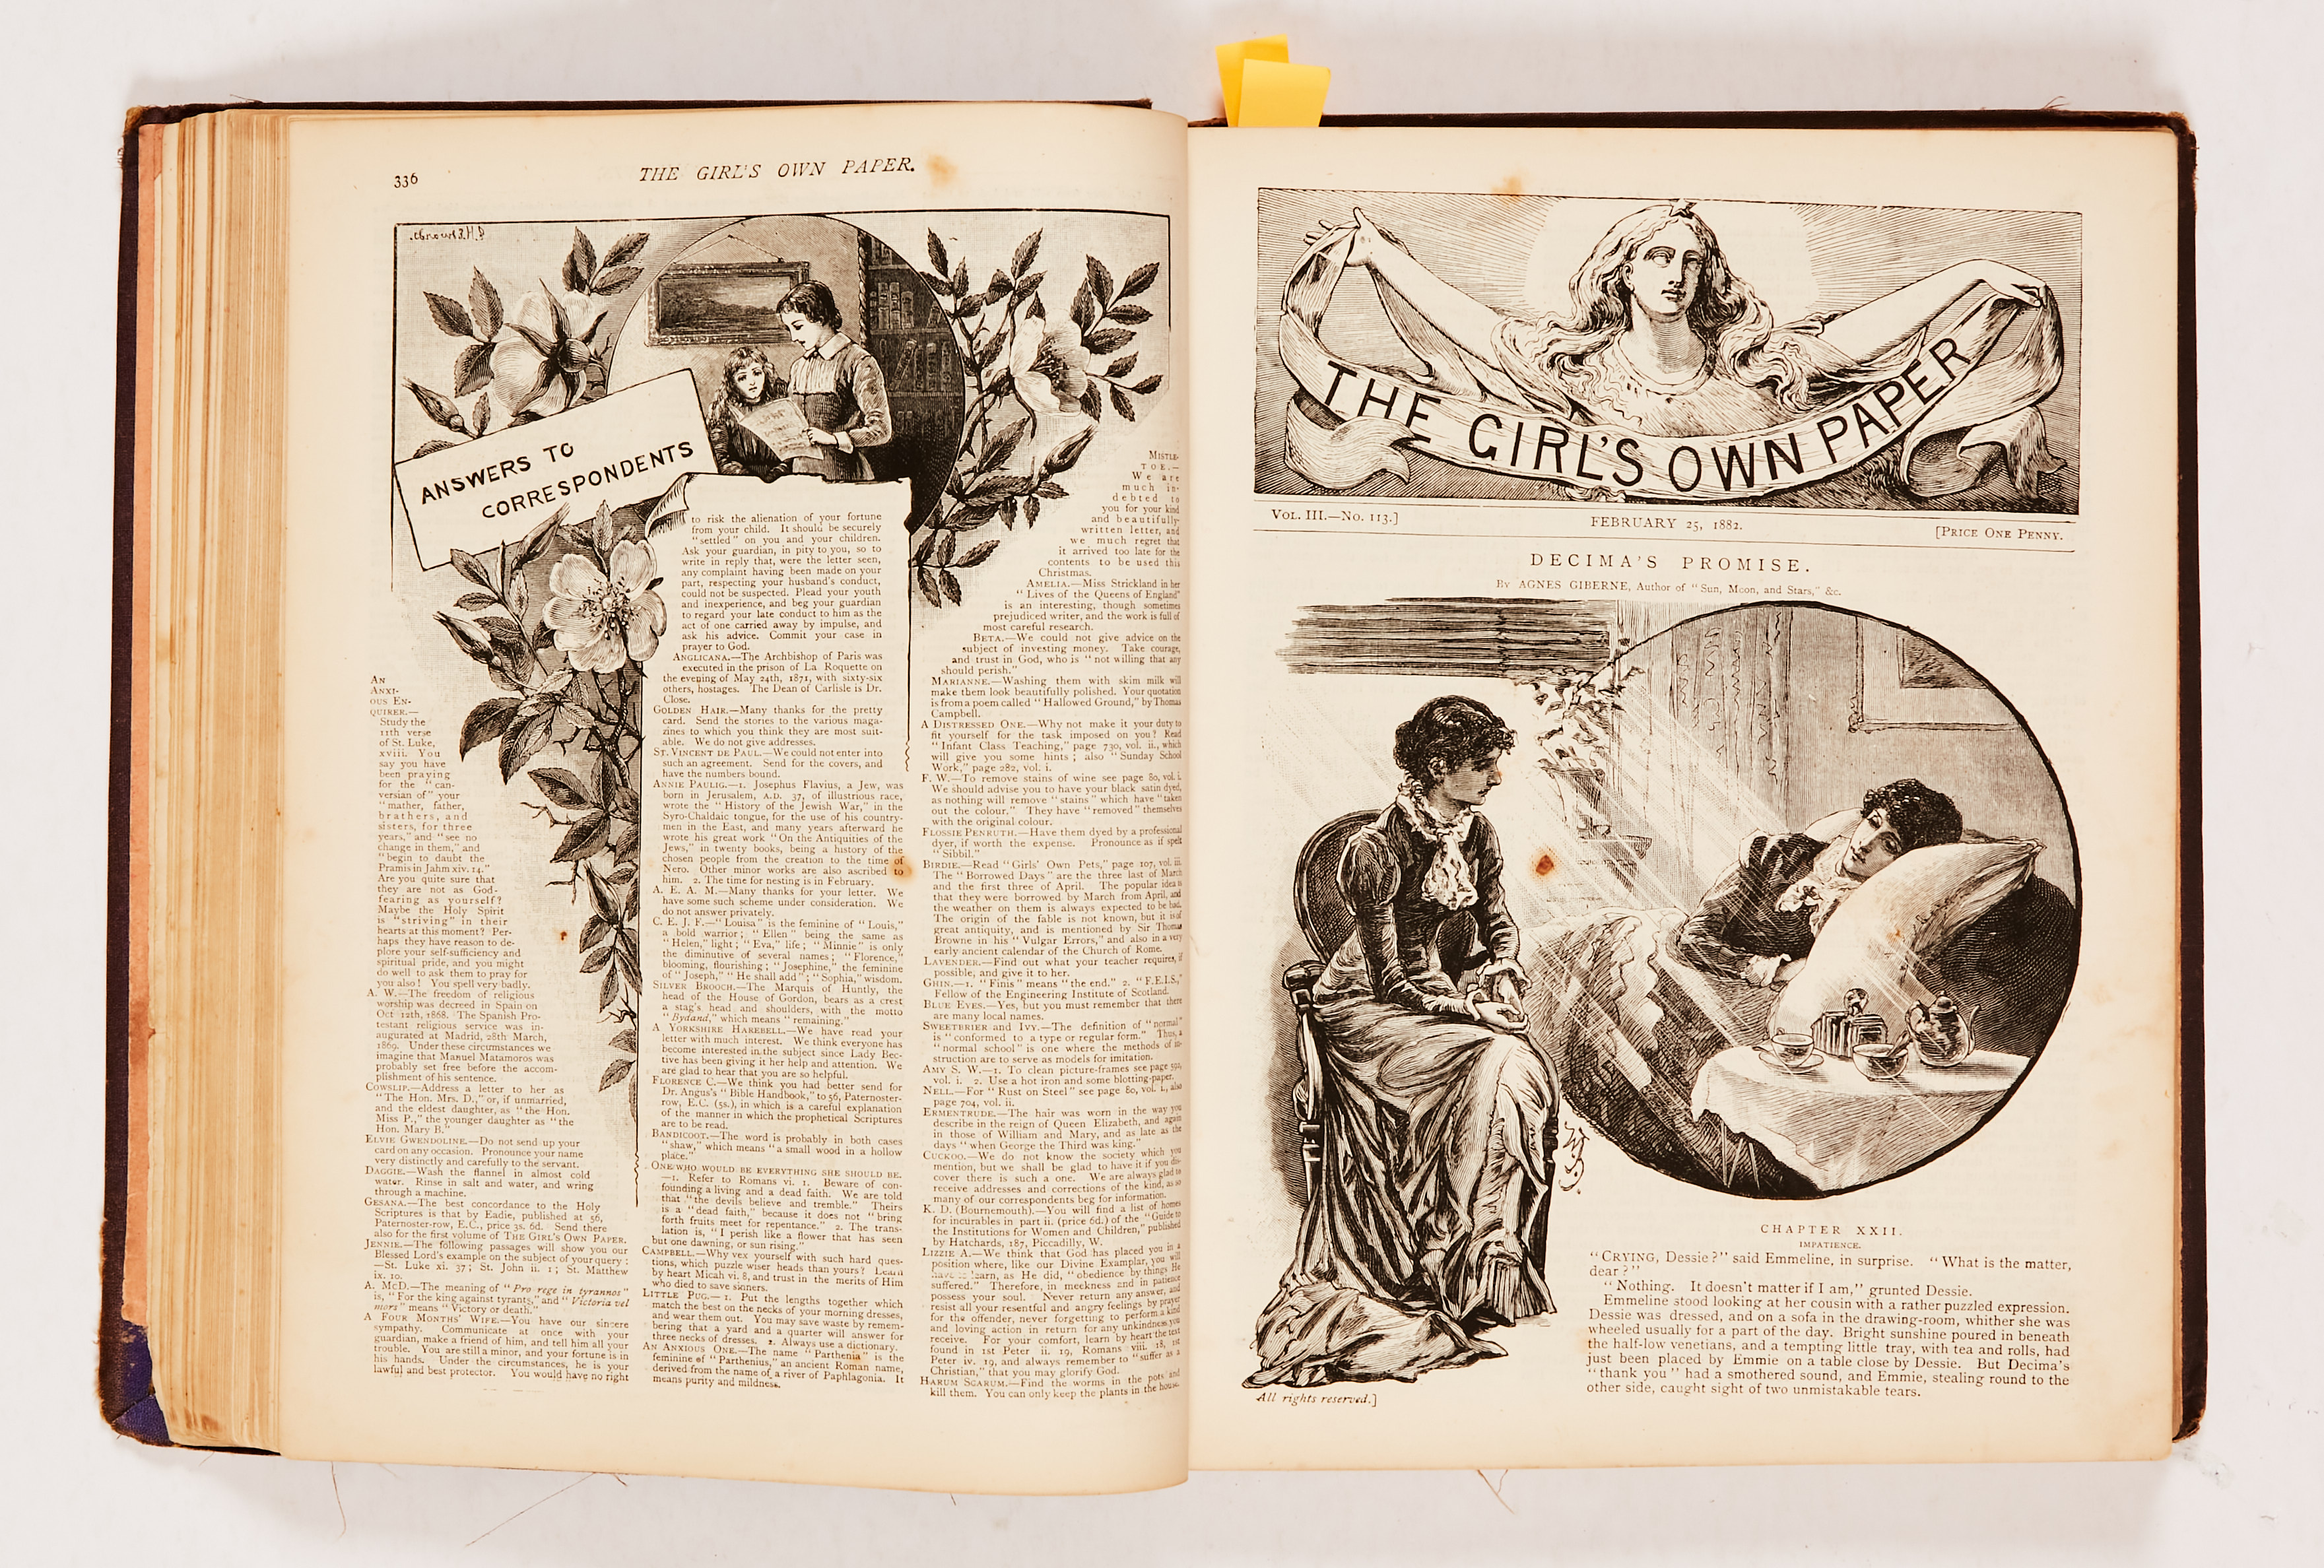 The Girl's Own Paper (1882) 106-135. Worn cloth binding. Interior pages [fn-/fn+] (20) - Image 2 of 4